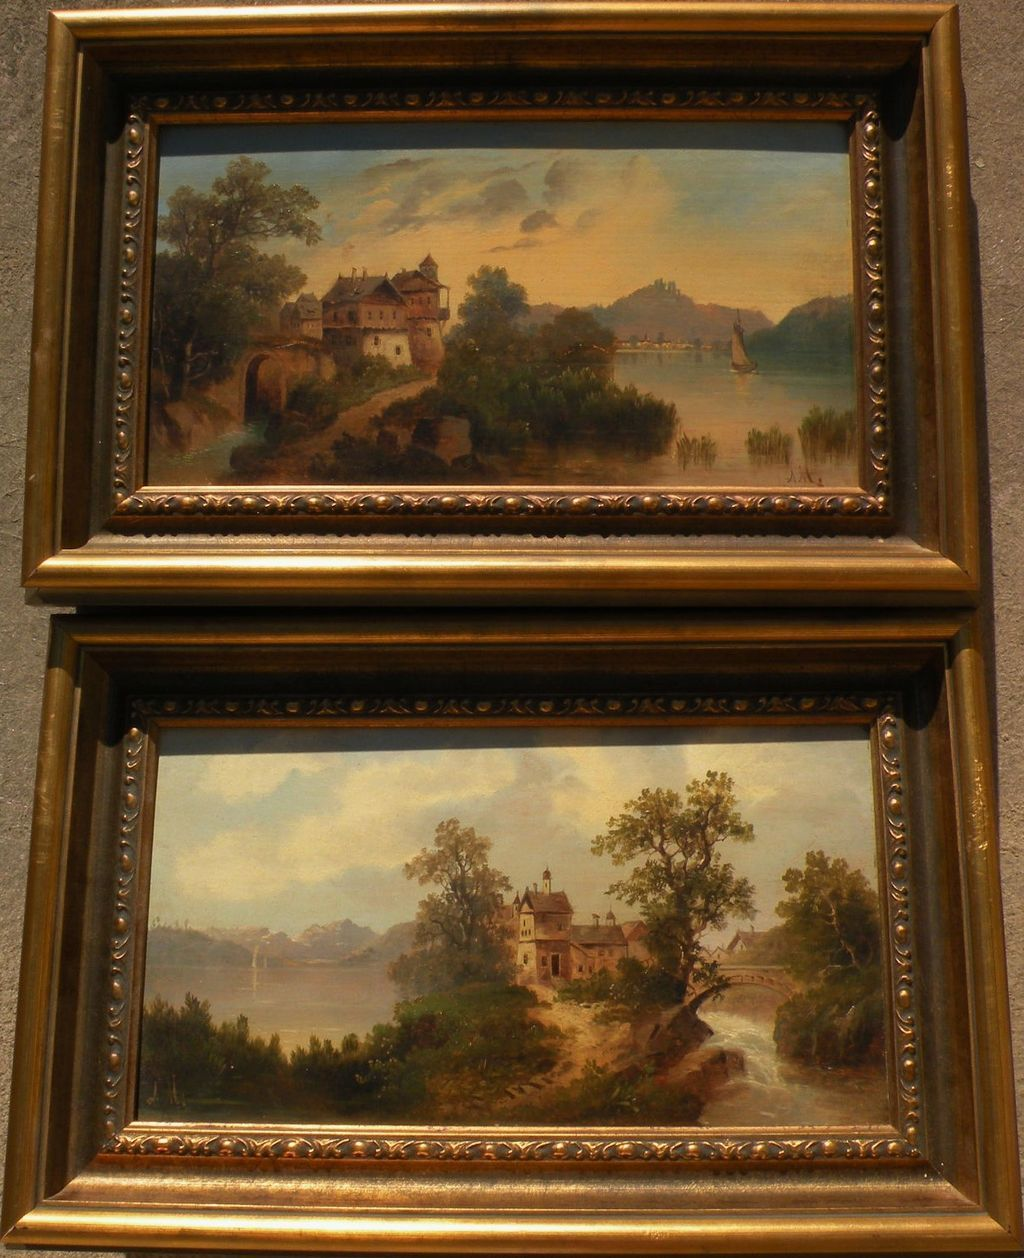 German 19th century art PAIR signed landscape paintings on beveled wood panels